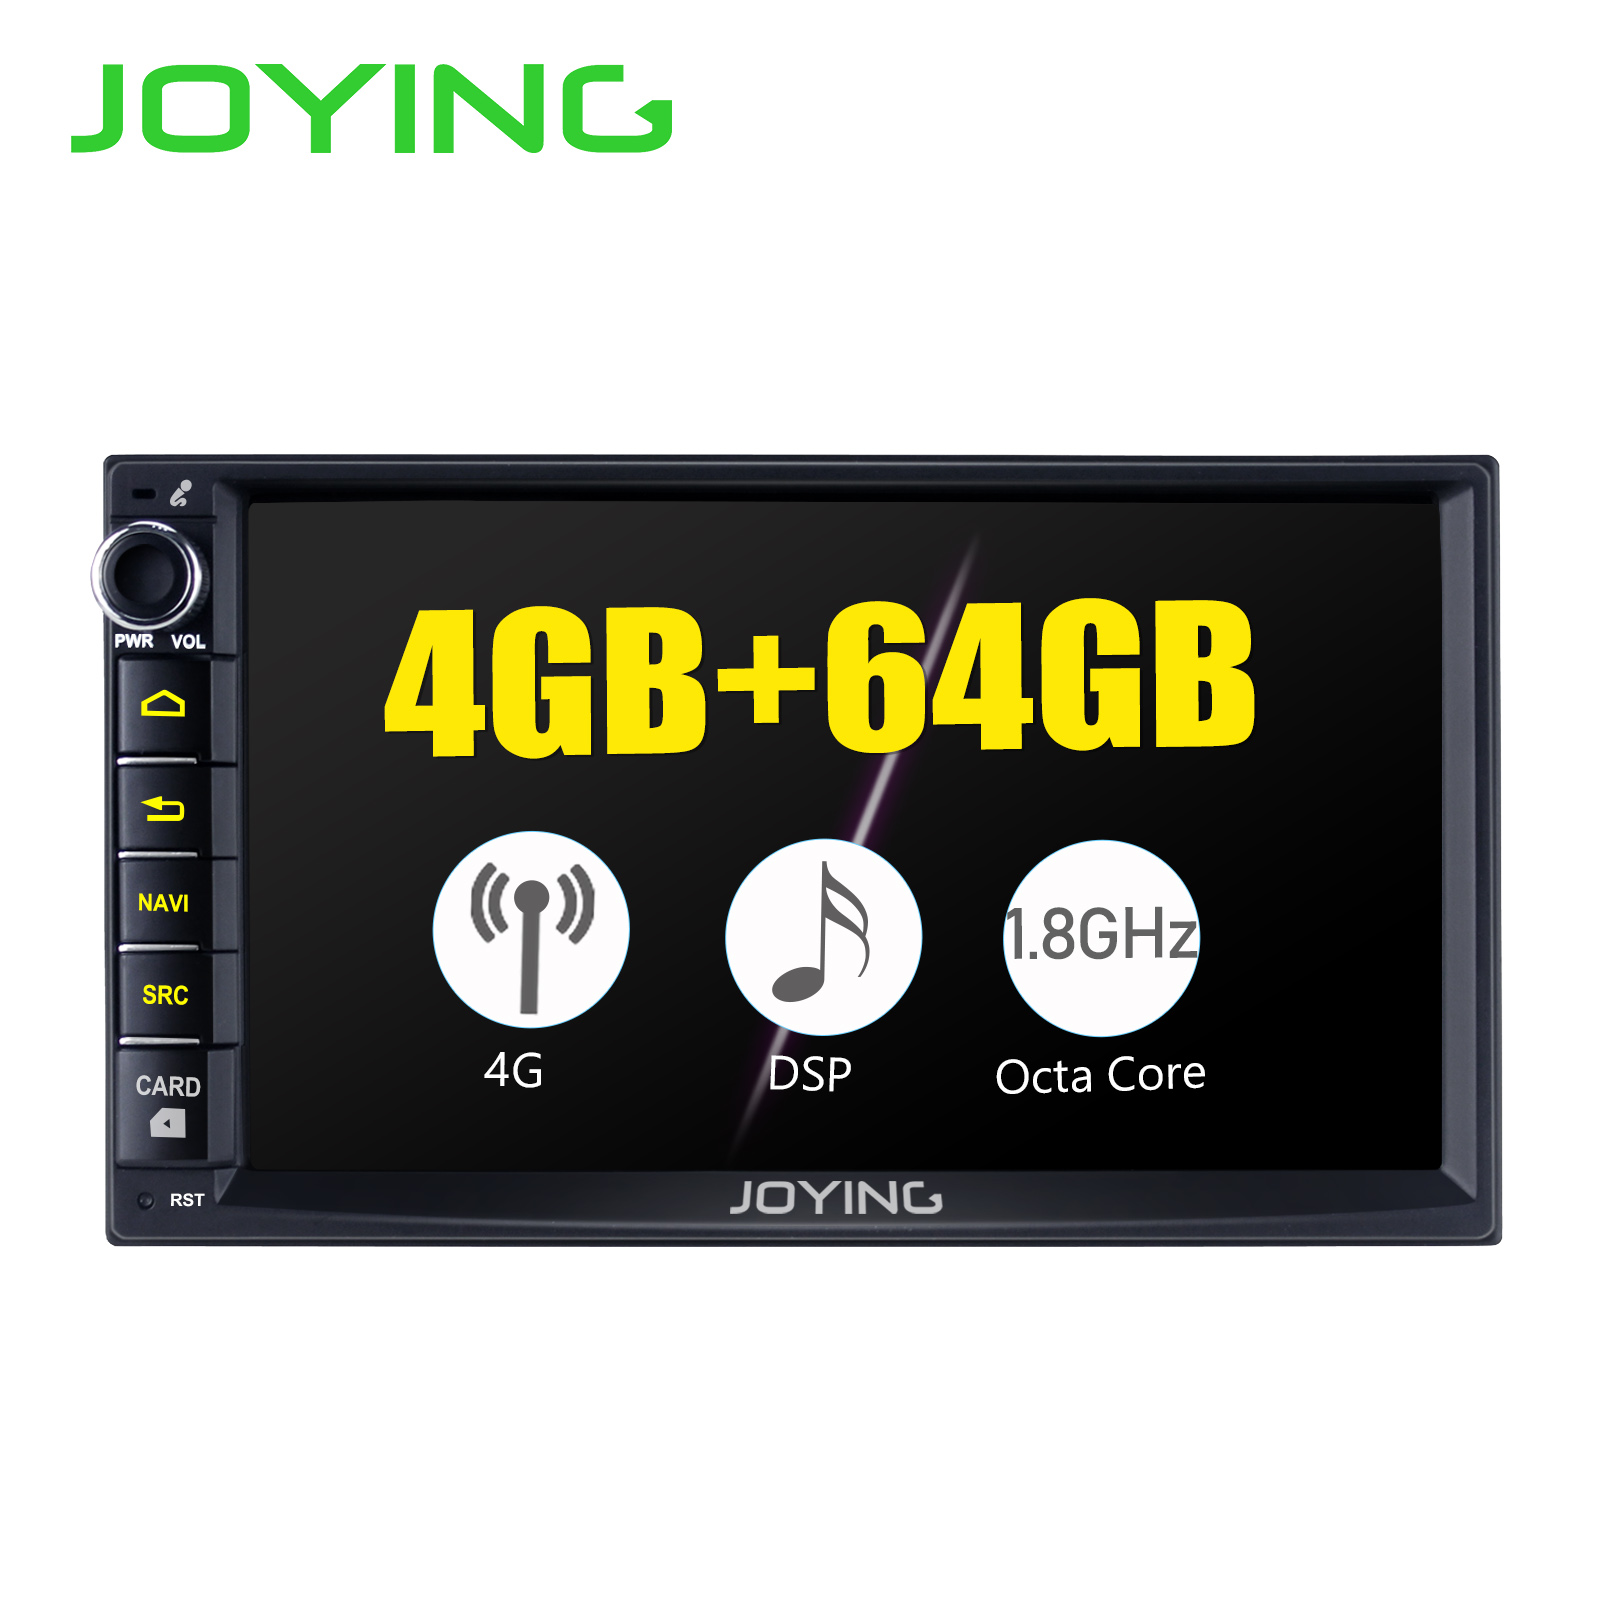 """JOYING 2 din Android 8.1 Car radio GPS Octa Core 1024*600 4GB+64GB stereo audio 7"""" media player support 4G universal head unit-in Car Multimedia Player from Automobiles & Motorcycles    1"""